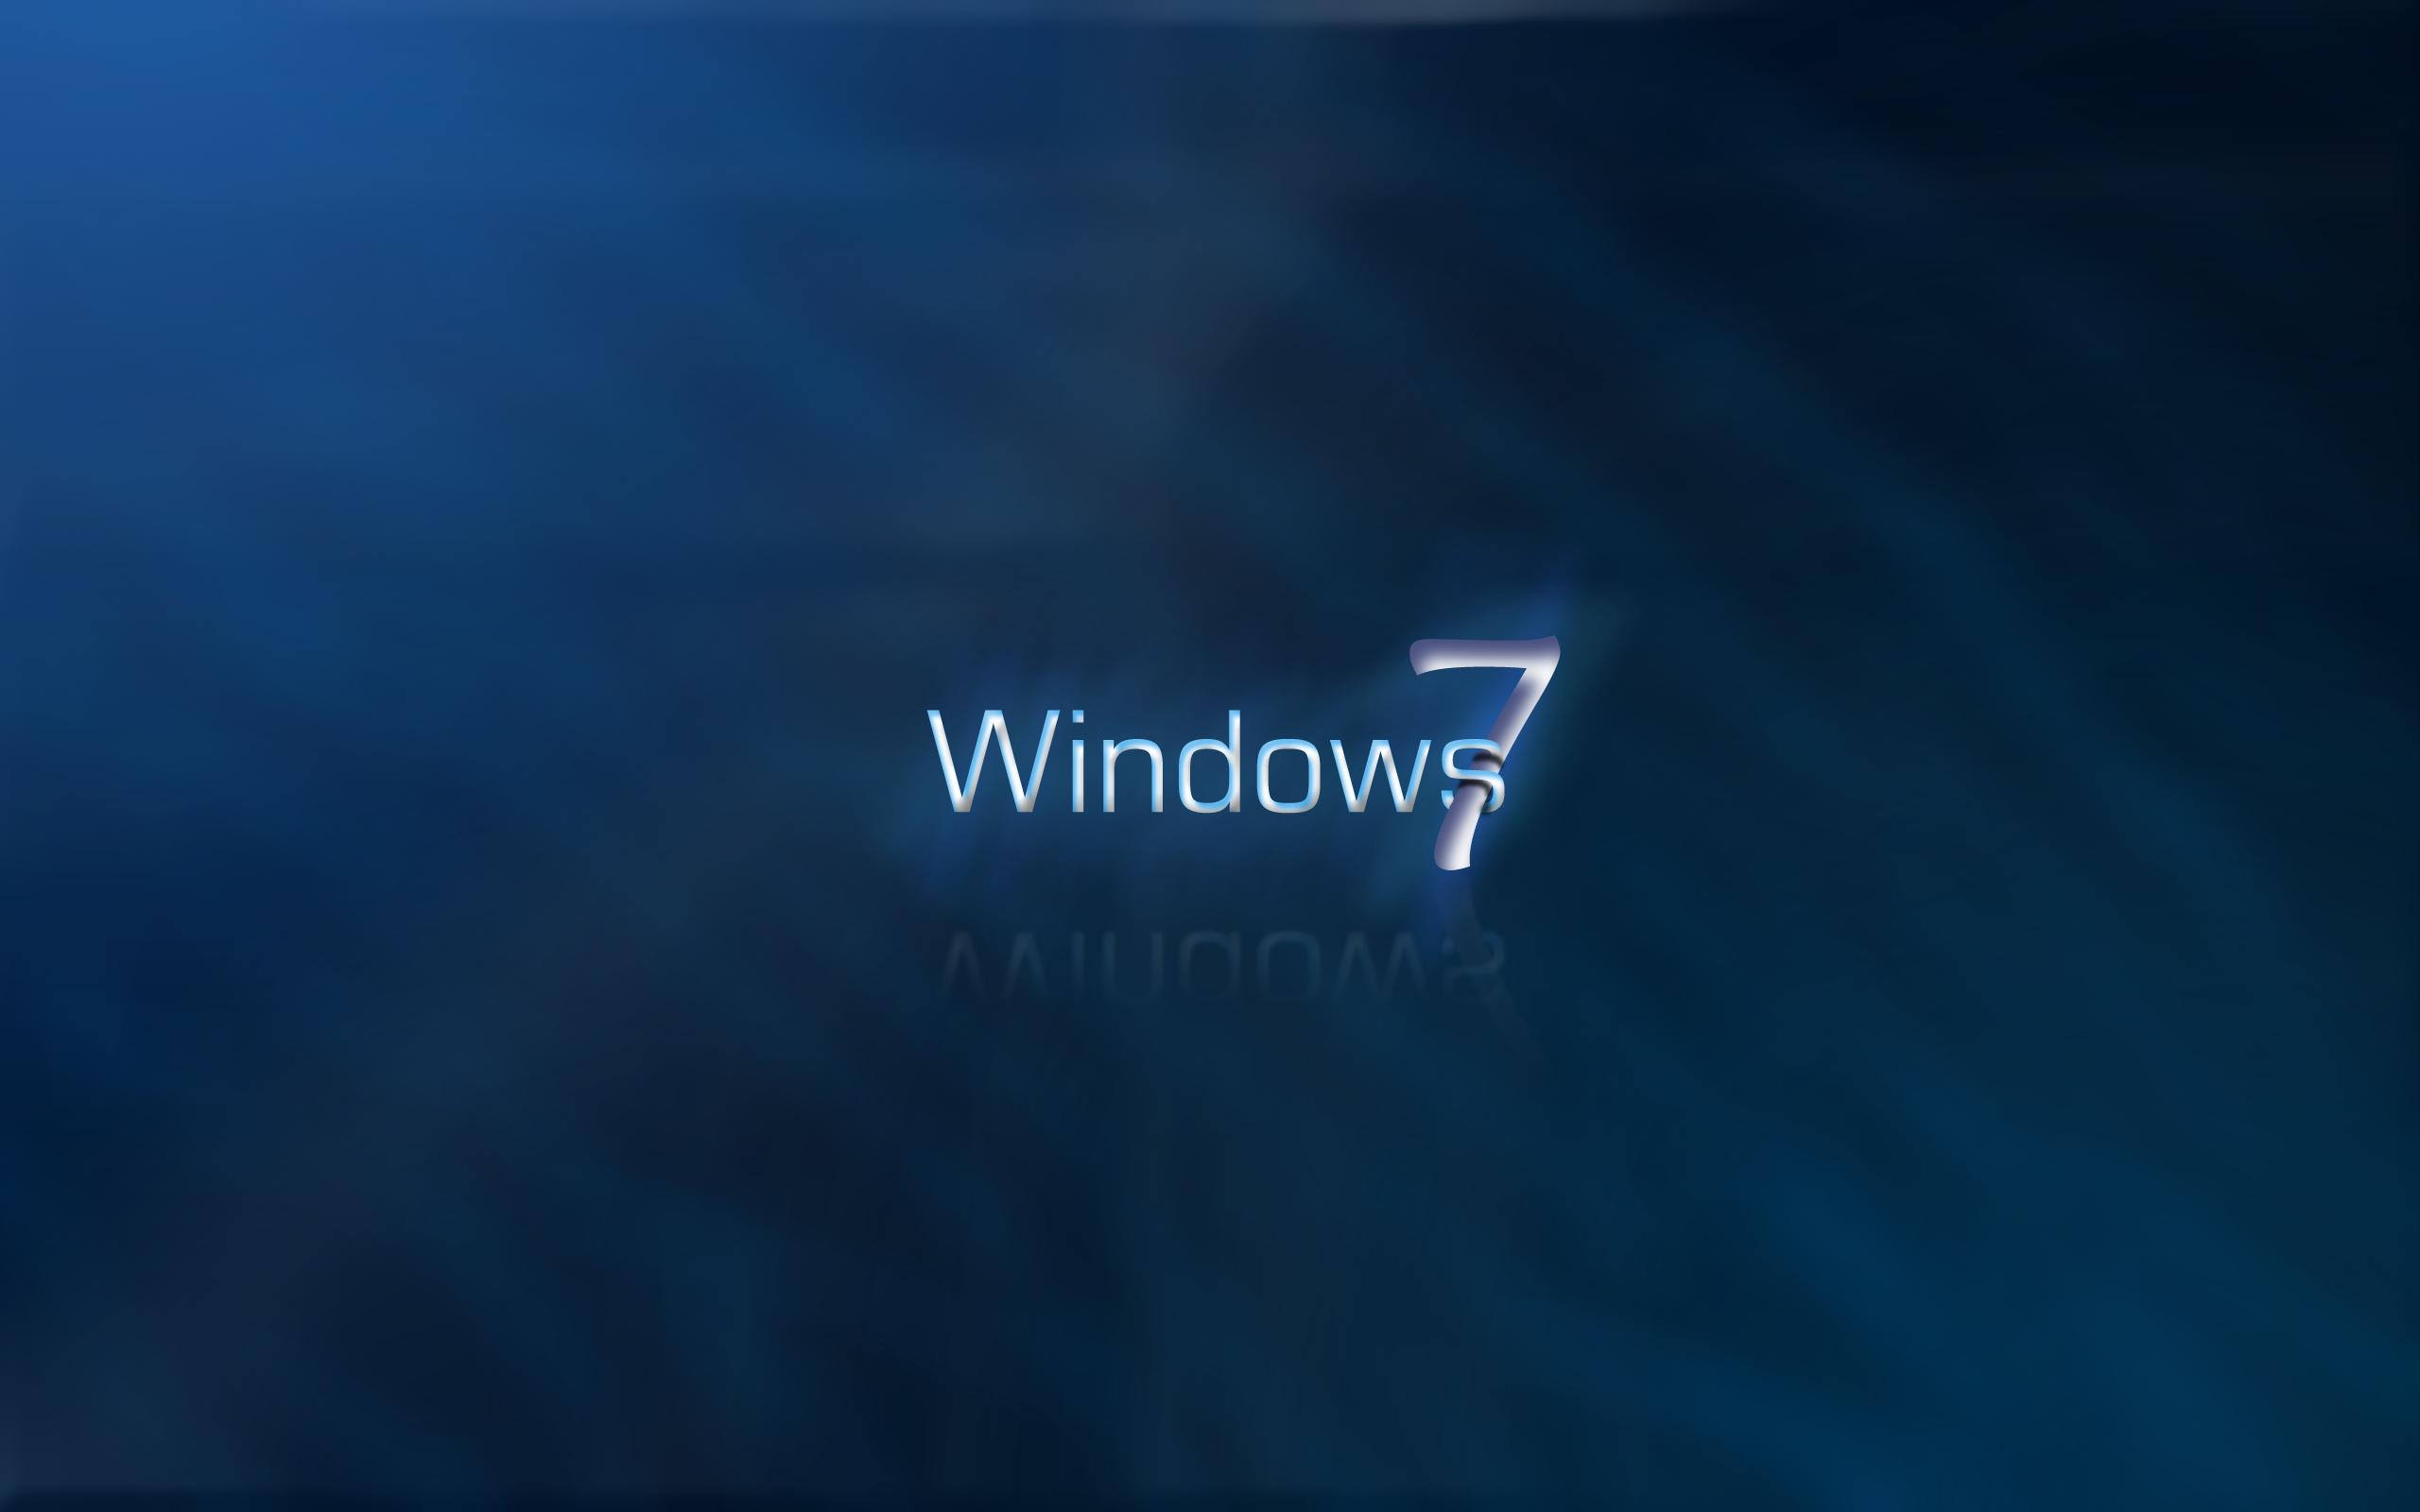 57 HD Windows 7 Wallpapers For Download 2560x1600